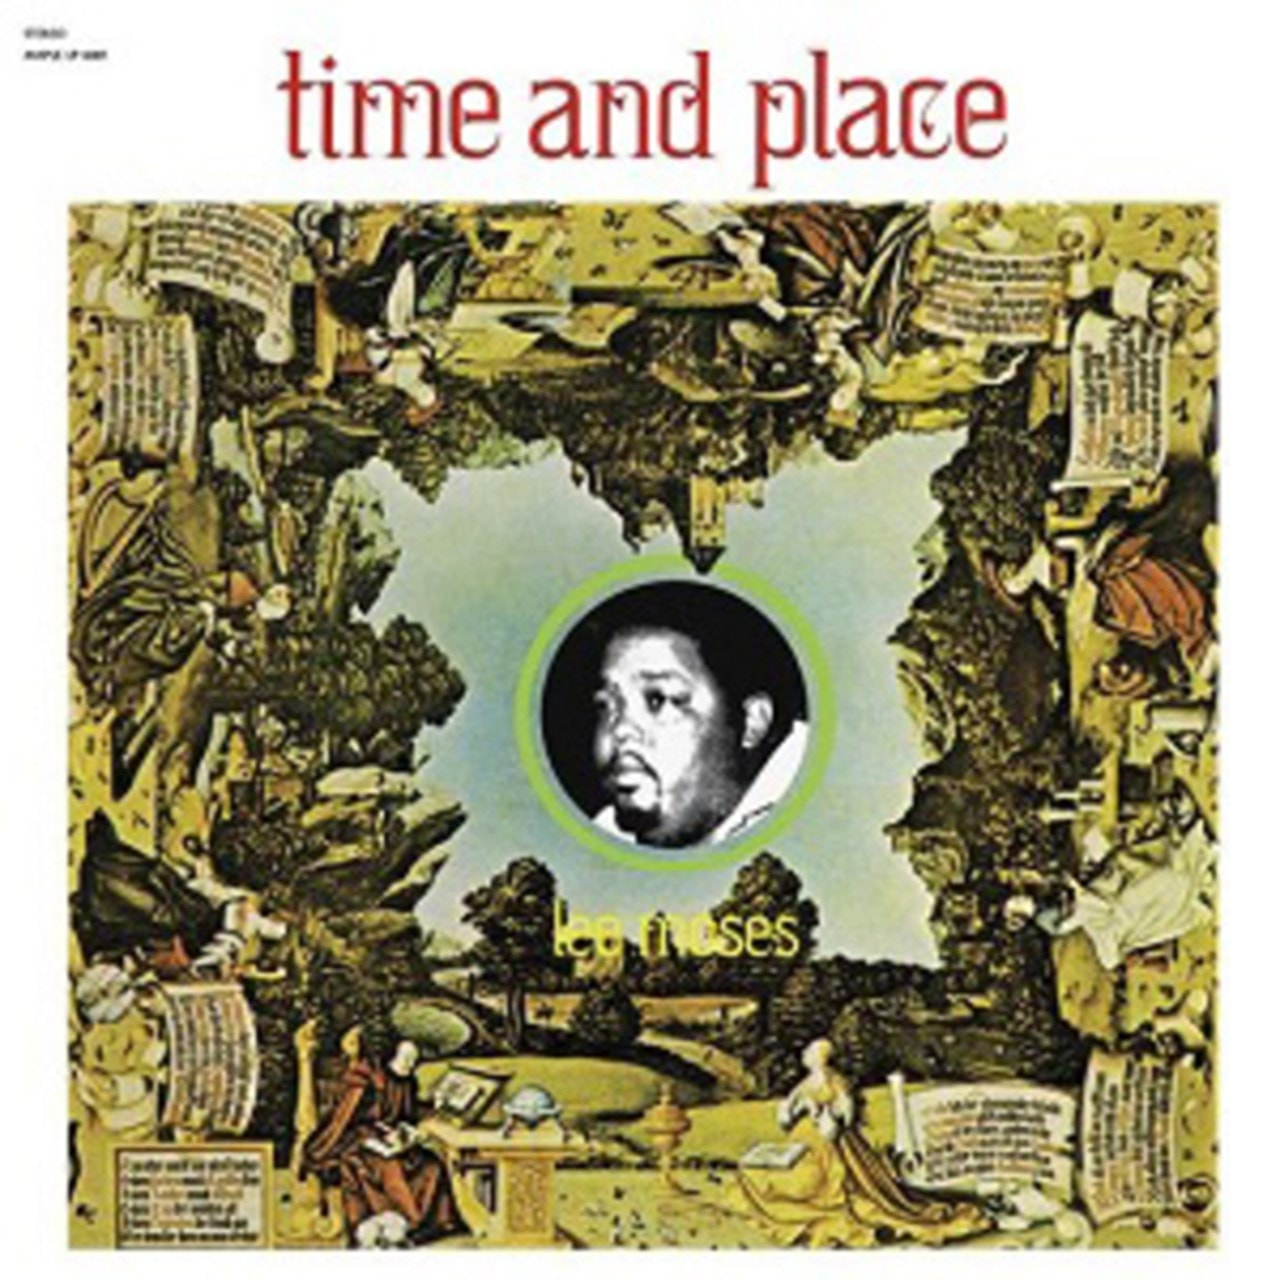 Time and Place - 1